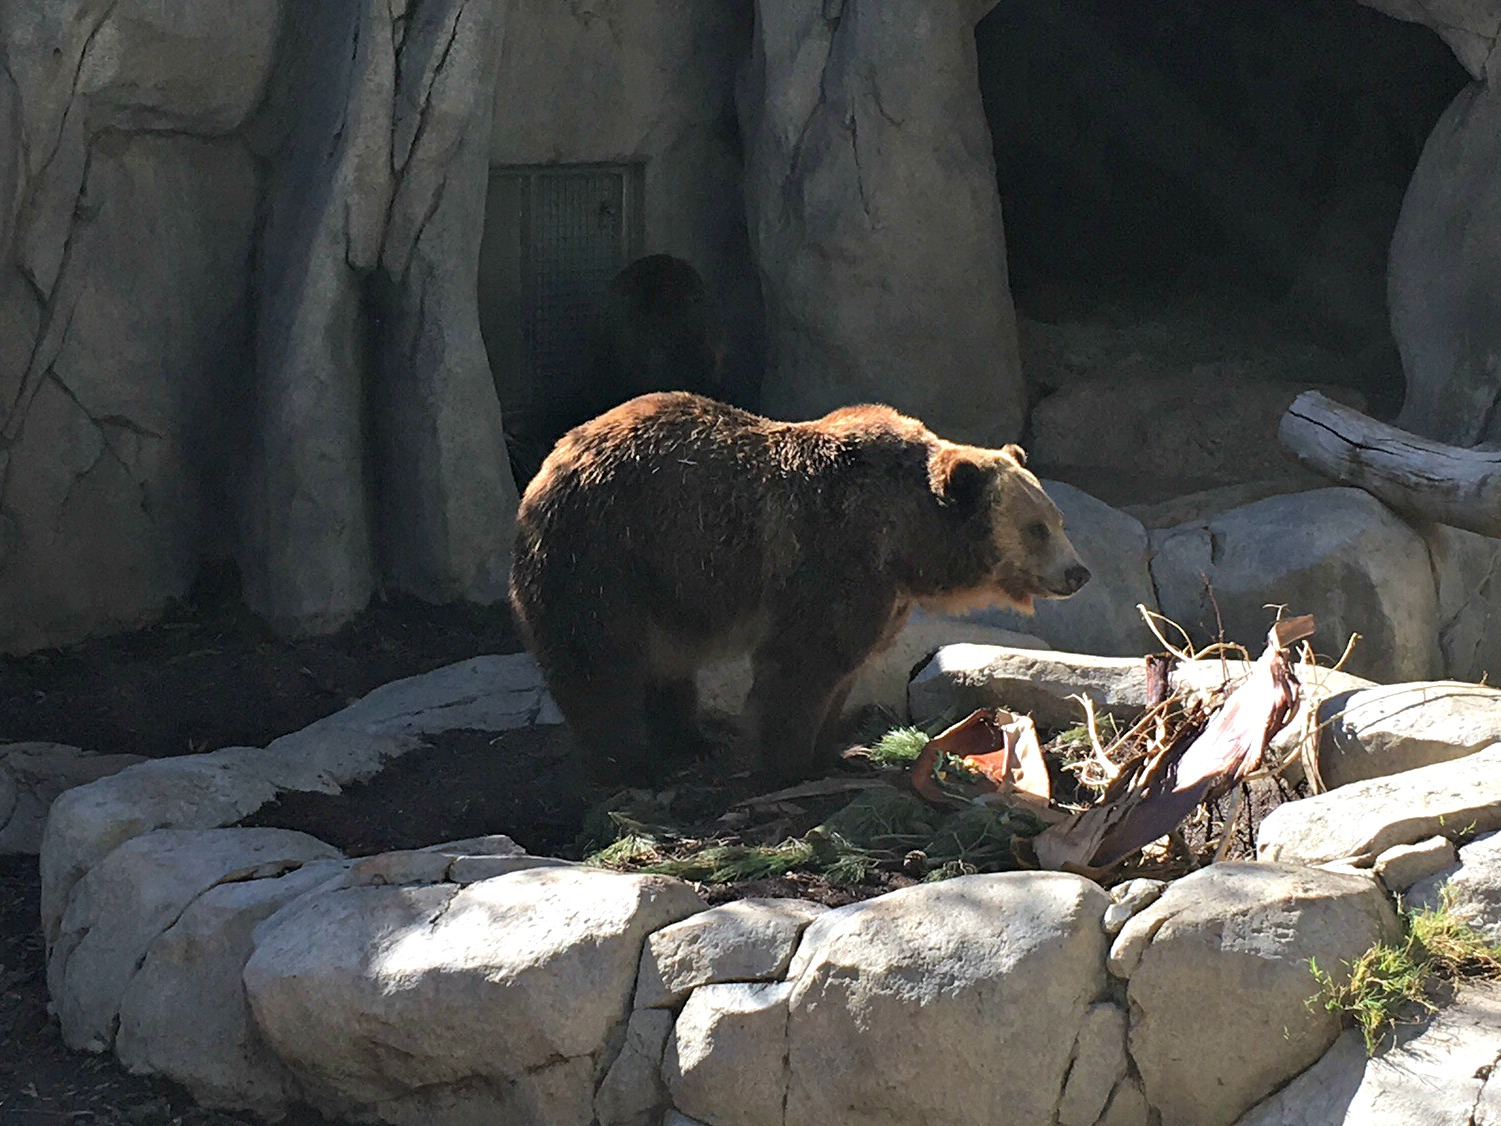 san diego zoo grizzly bear